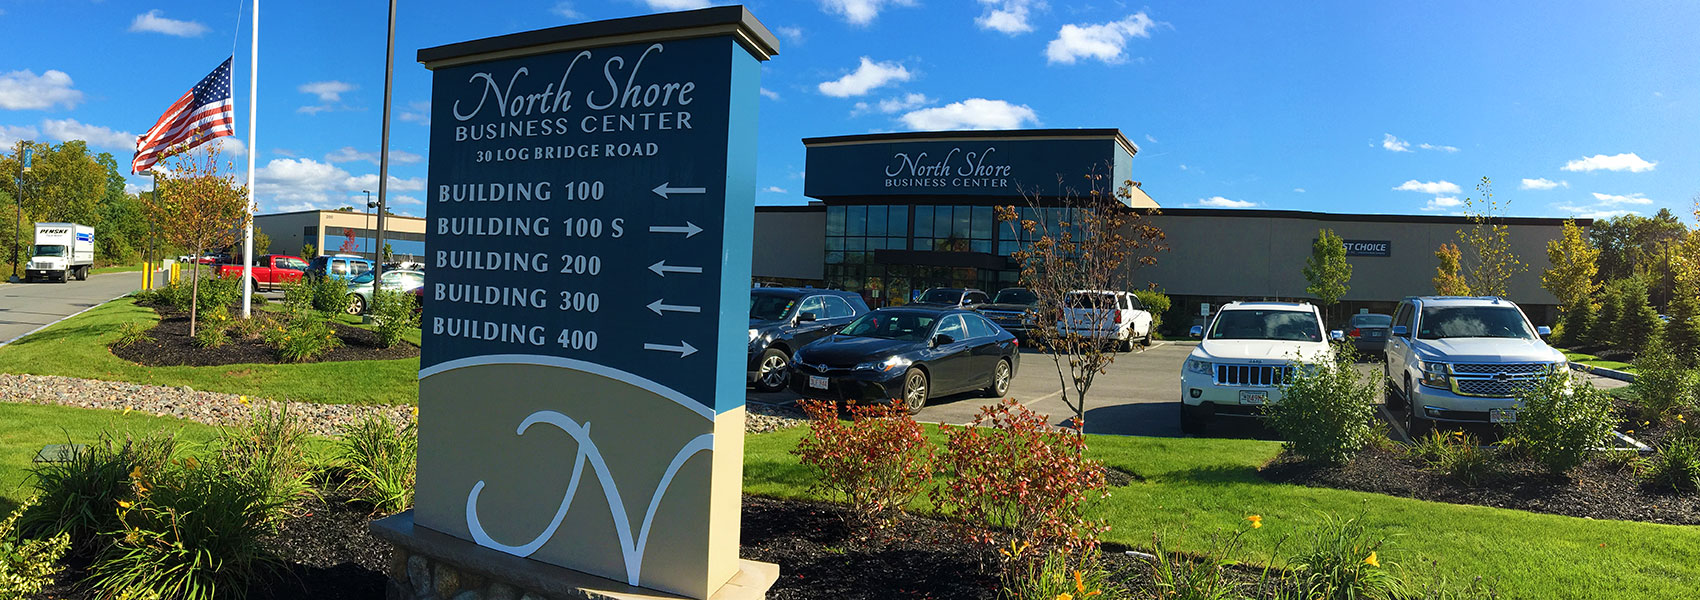 North Shore Business Center, Middleton, MA